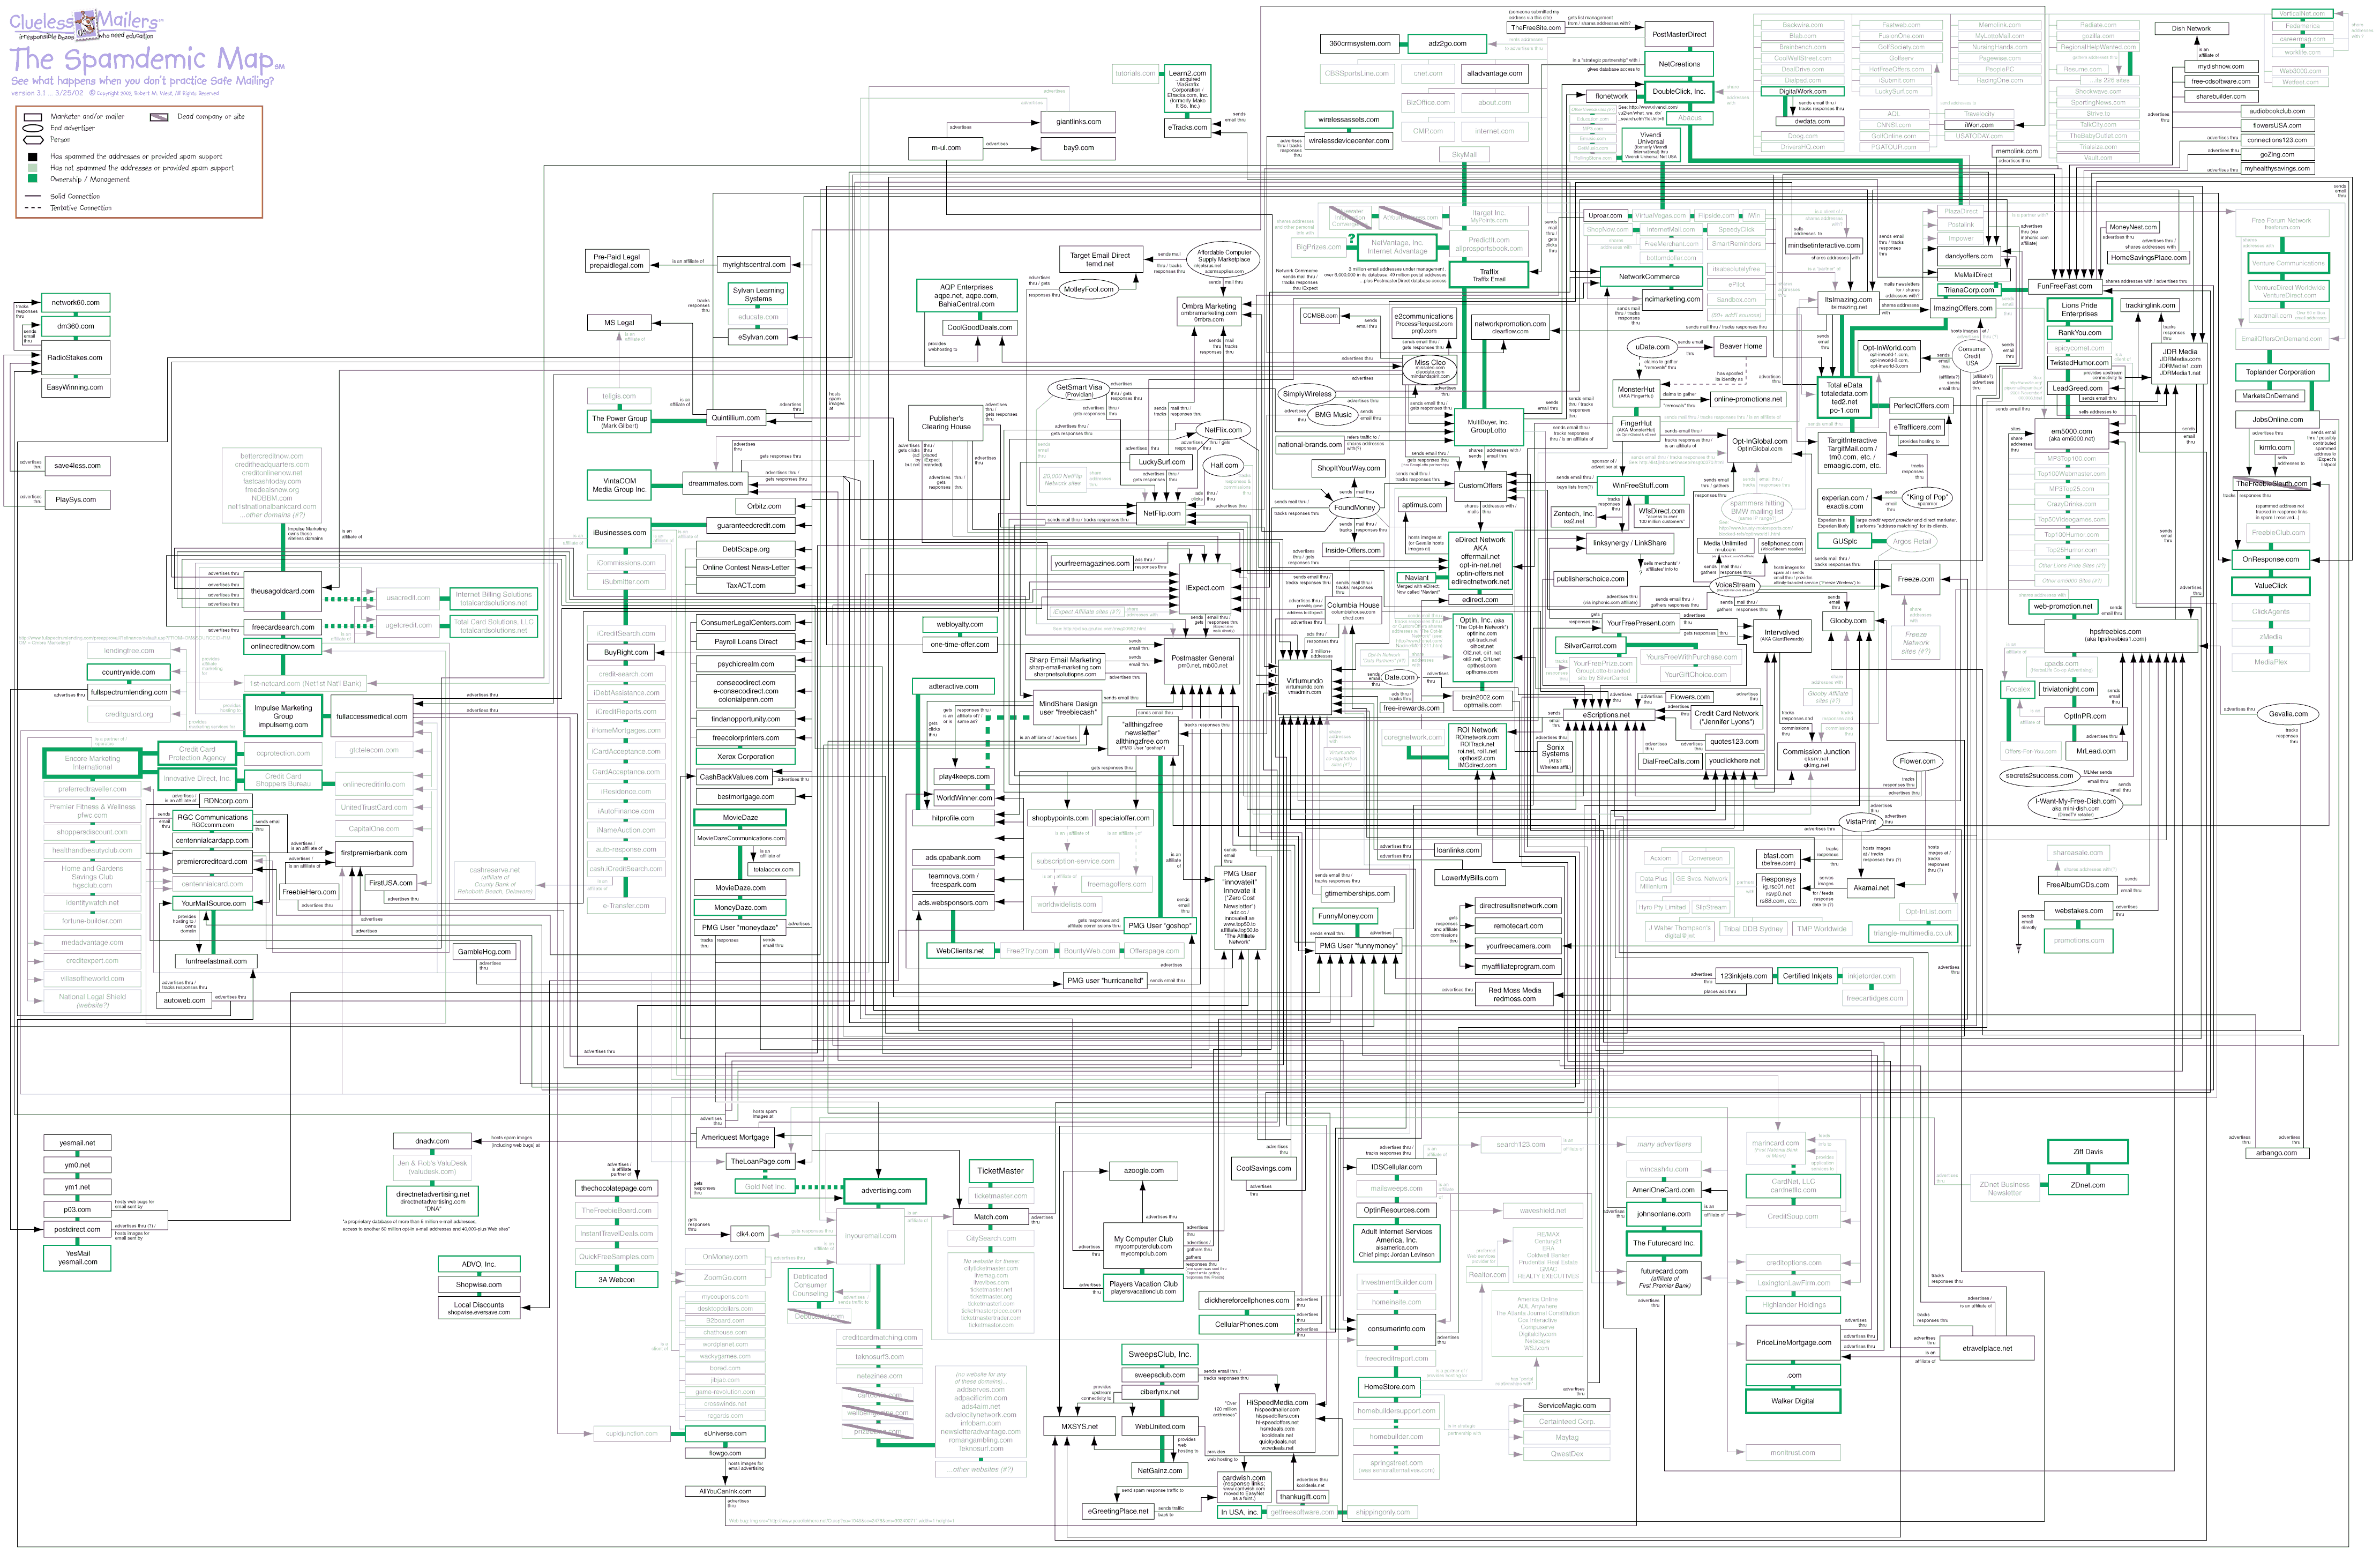 Tree Topology And Mesh Topology With Explain Devices further Topology further 280197 additionally puter  work Diagram besides Iconverter Single Fiber Cwdm Multiplexers And Add Drop. on network topology diagram